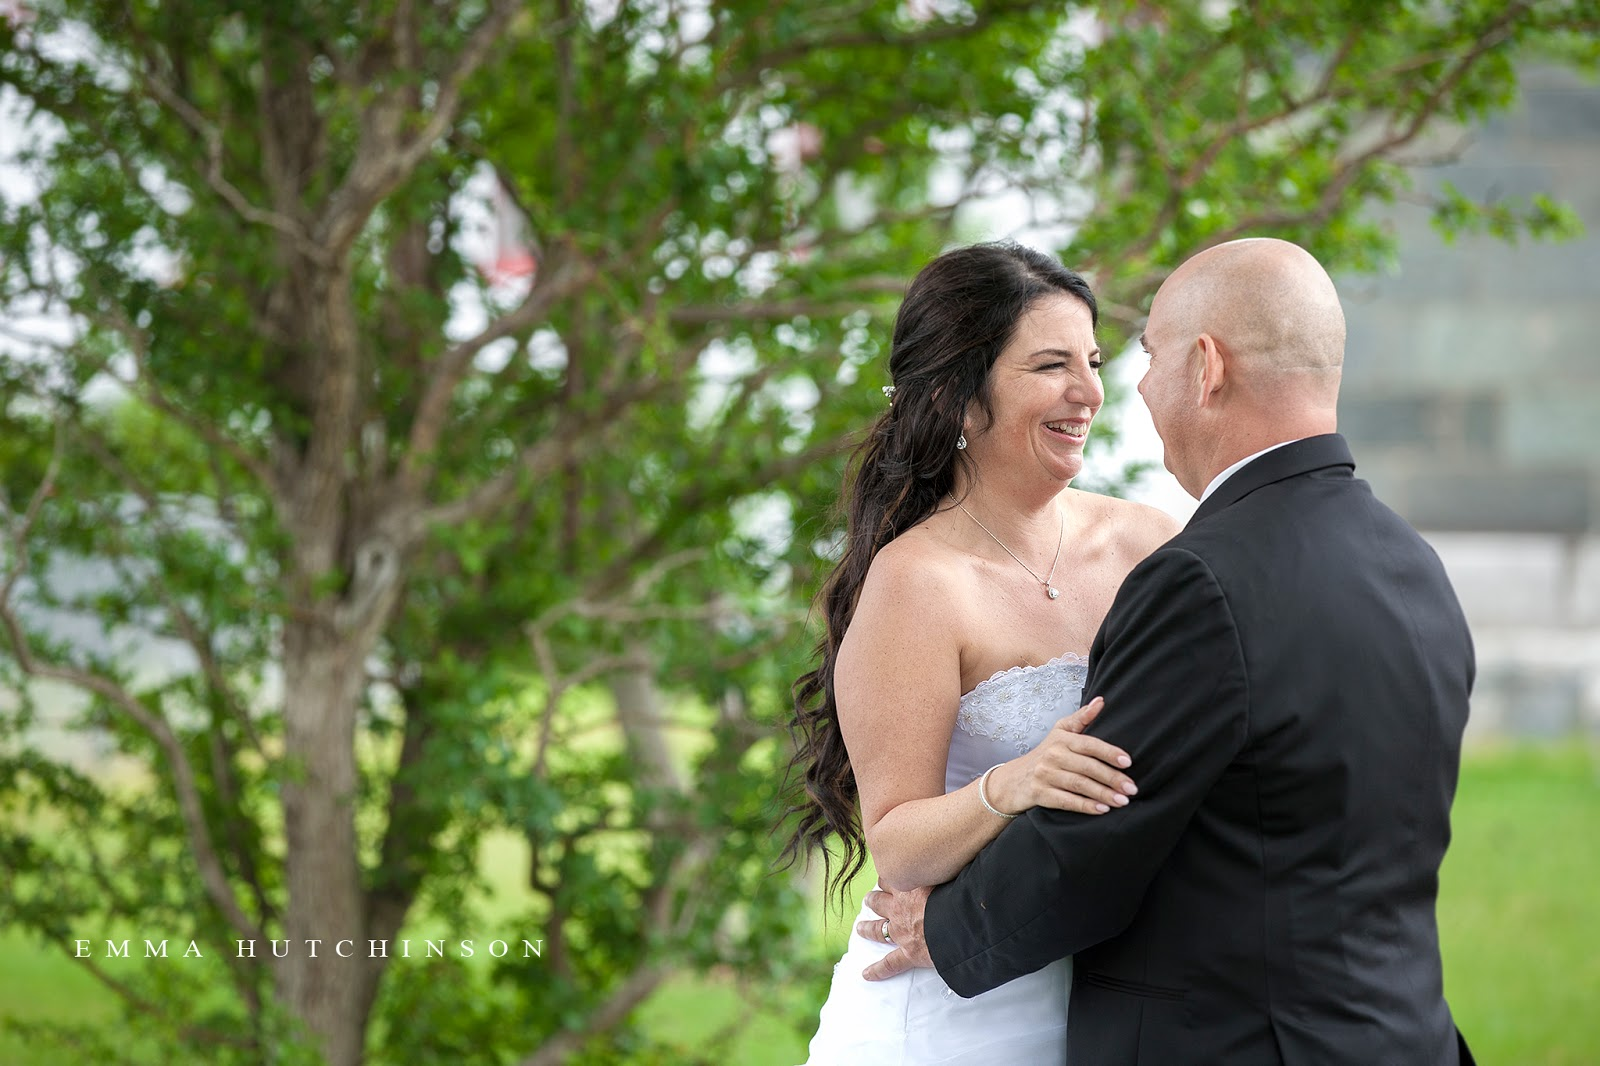 Candid wedding photography - bride and groom laughing.